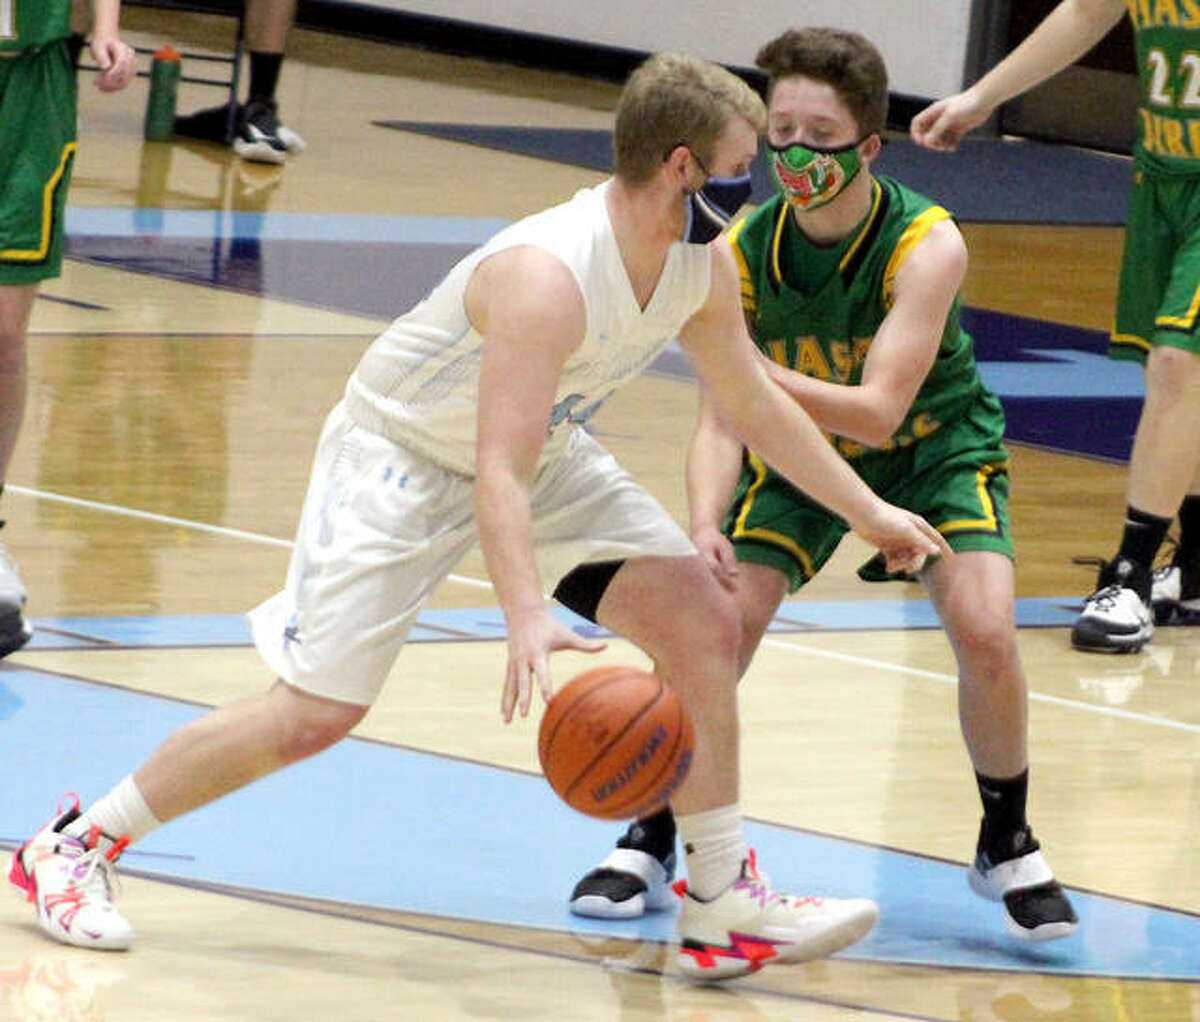 CJ Brunaugh of Jersey dribbles against Southwestern's Charlie Darr Saturday in Jerseyville.